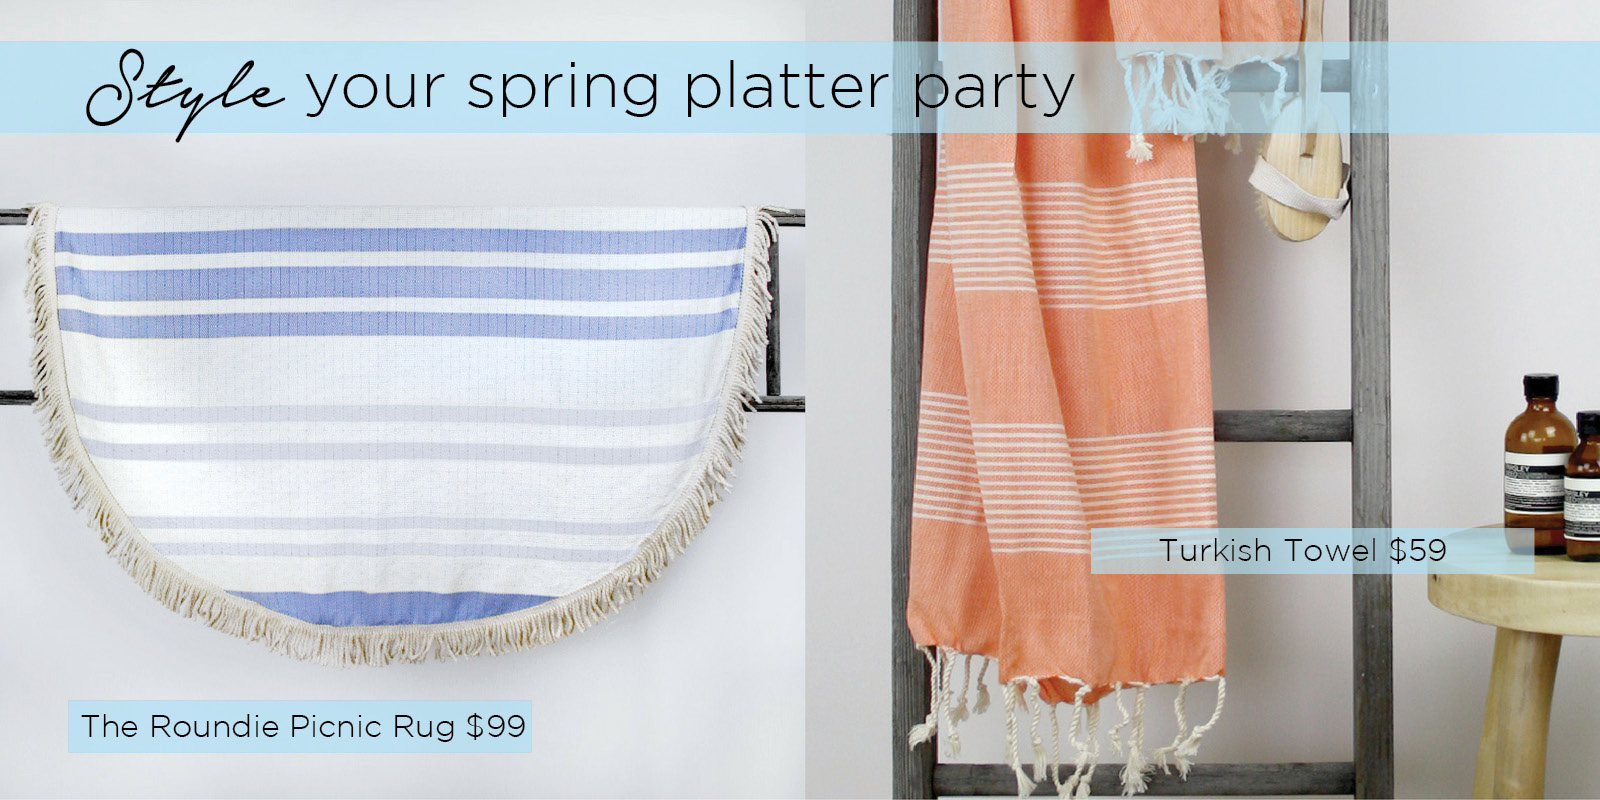 How to prepare the perfect spring party platter